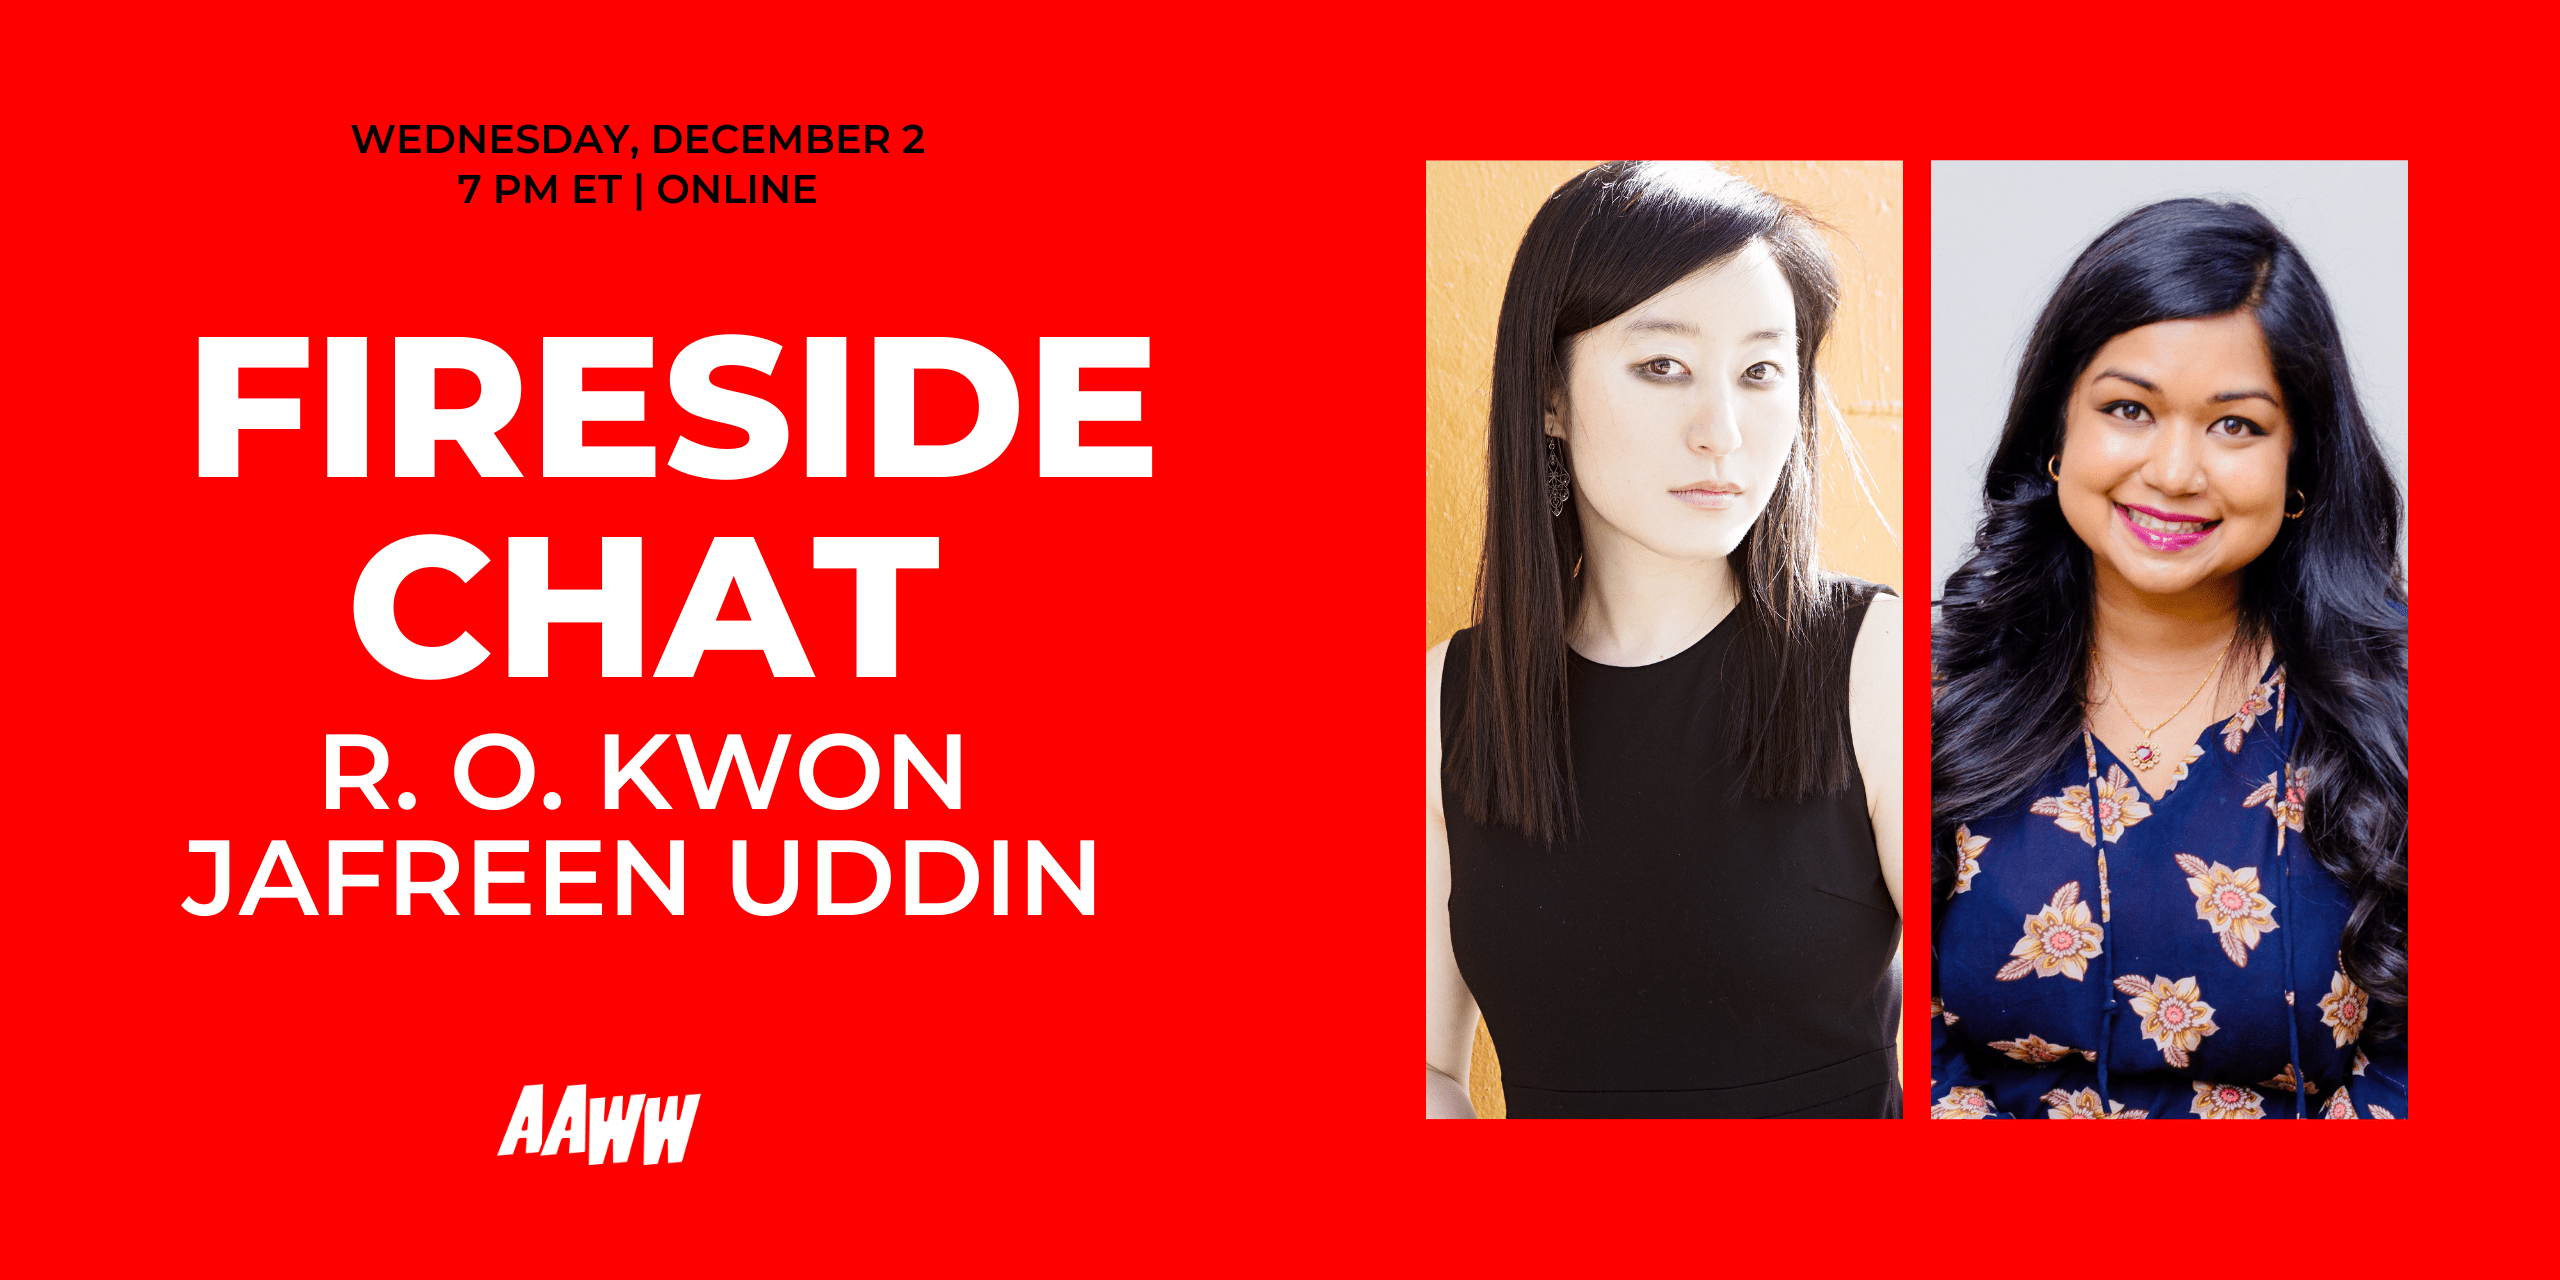 Fireside Chat: R. O. Kwon and Jafreen Uddin